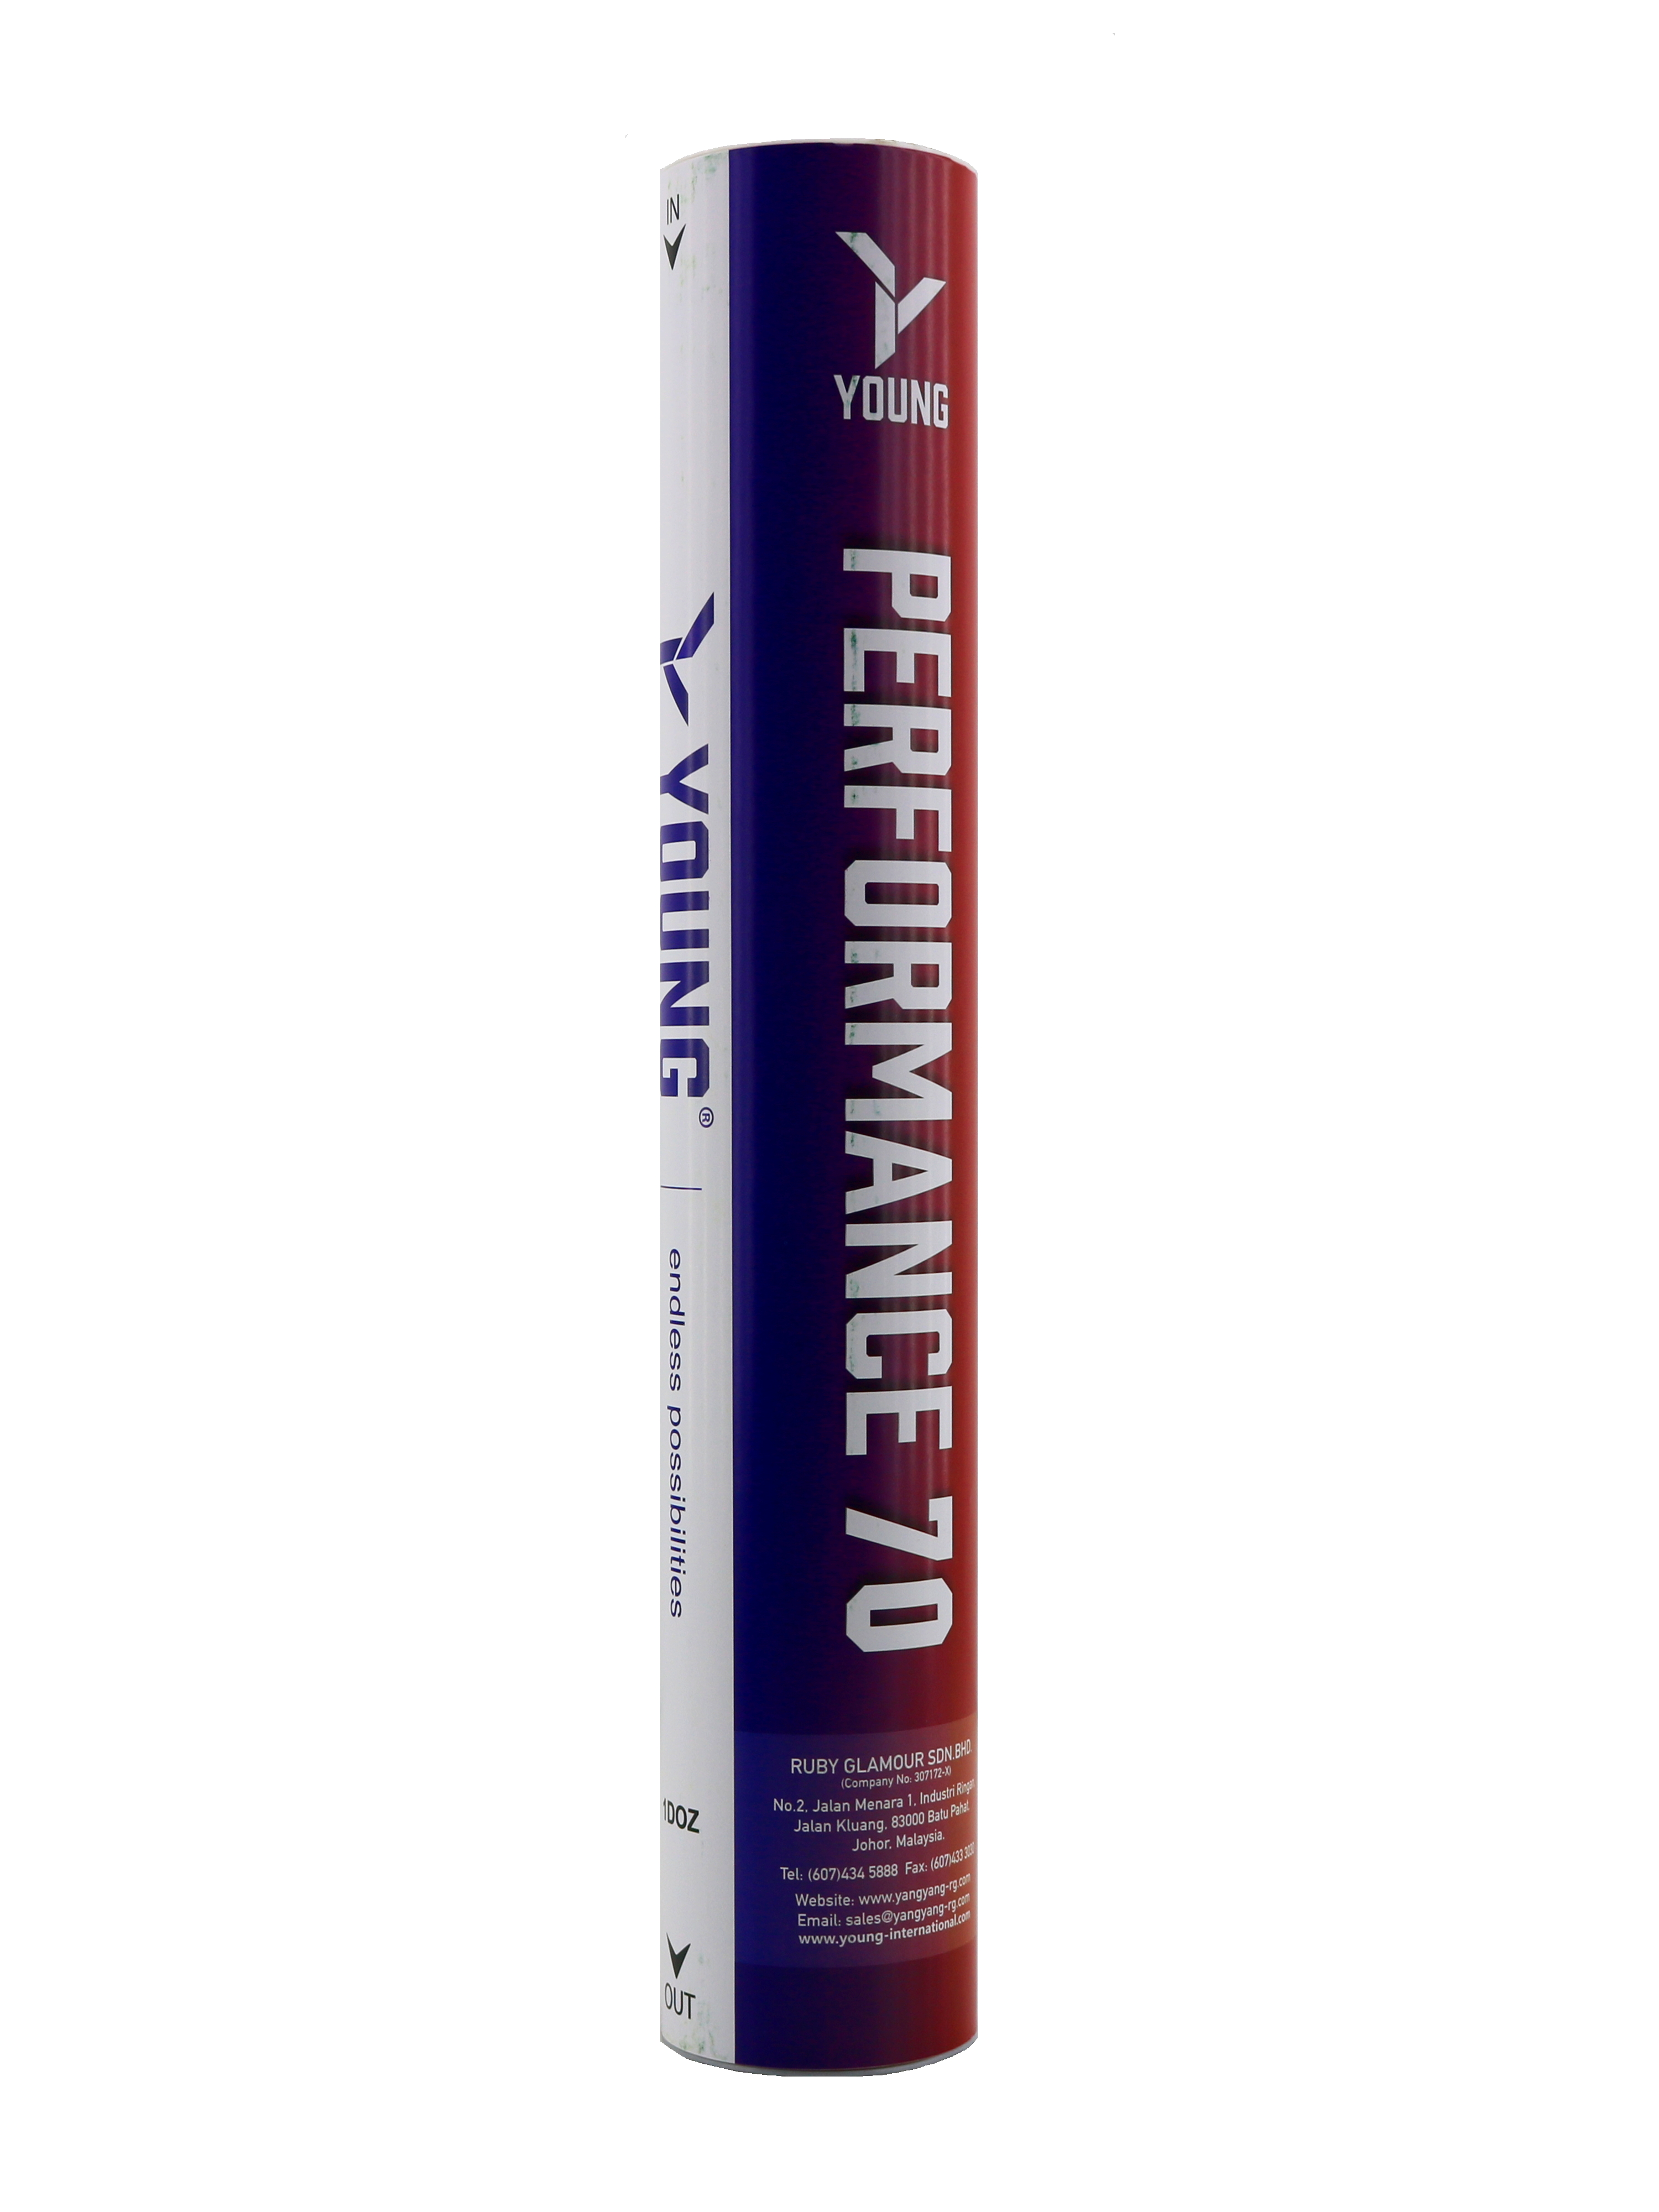 Young Performance 70 Tournament Grade Highest Quality Goose Feather Shuttlecock